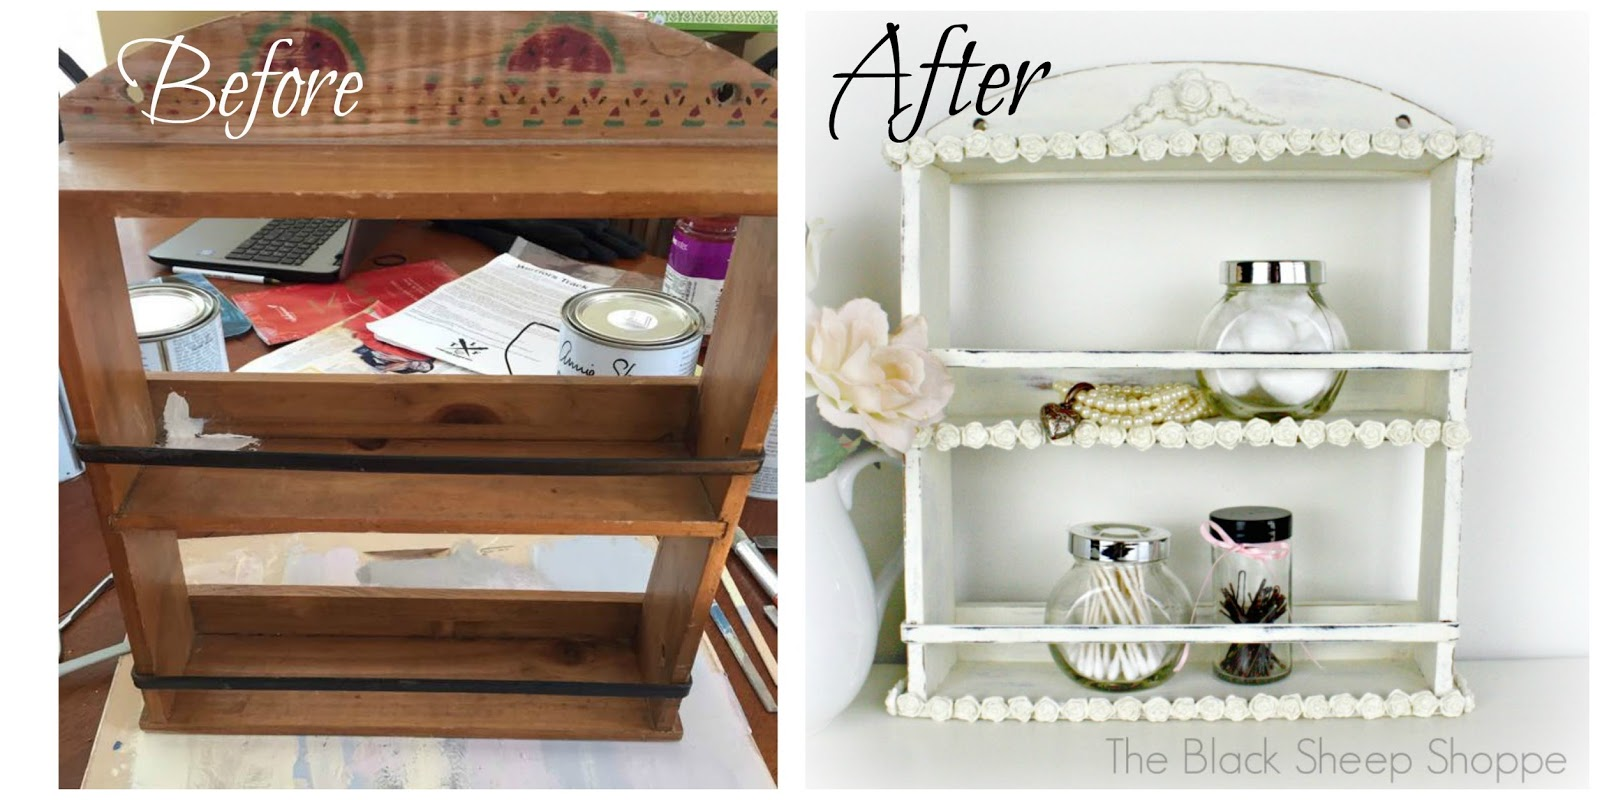 Before and after: Country spice rack to shabby chic shelf.